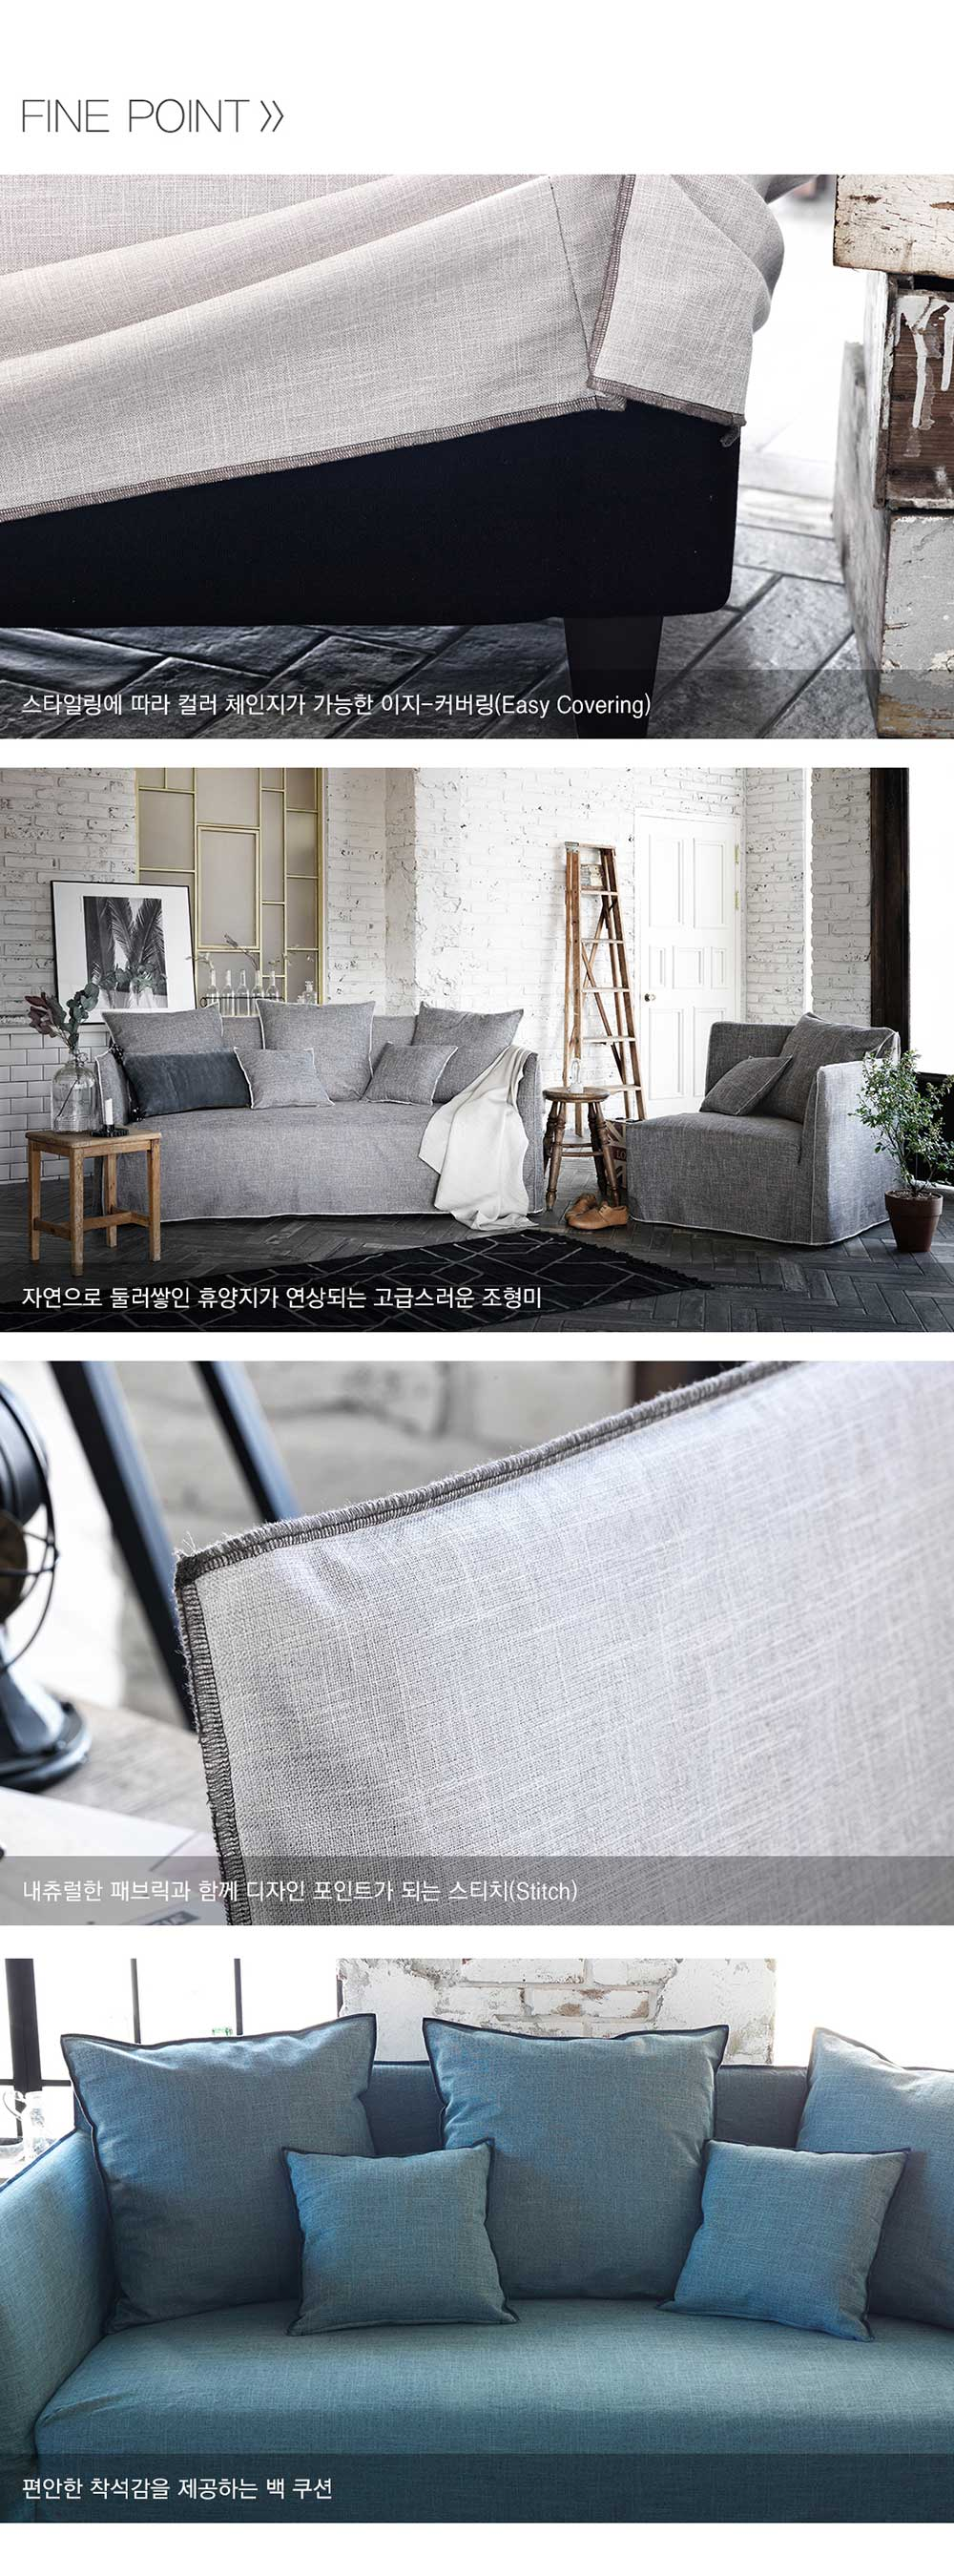 Londoner_Kinfolk_Industrial_Armchair_Sofa_(RIGHT)_(Woven Beige)_Online_Furniture_Singapore_Details_by_born_in_colour